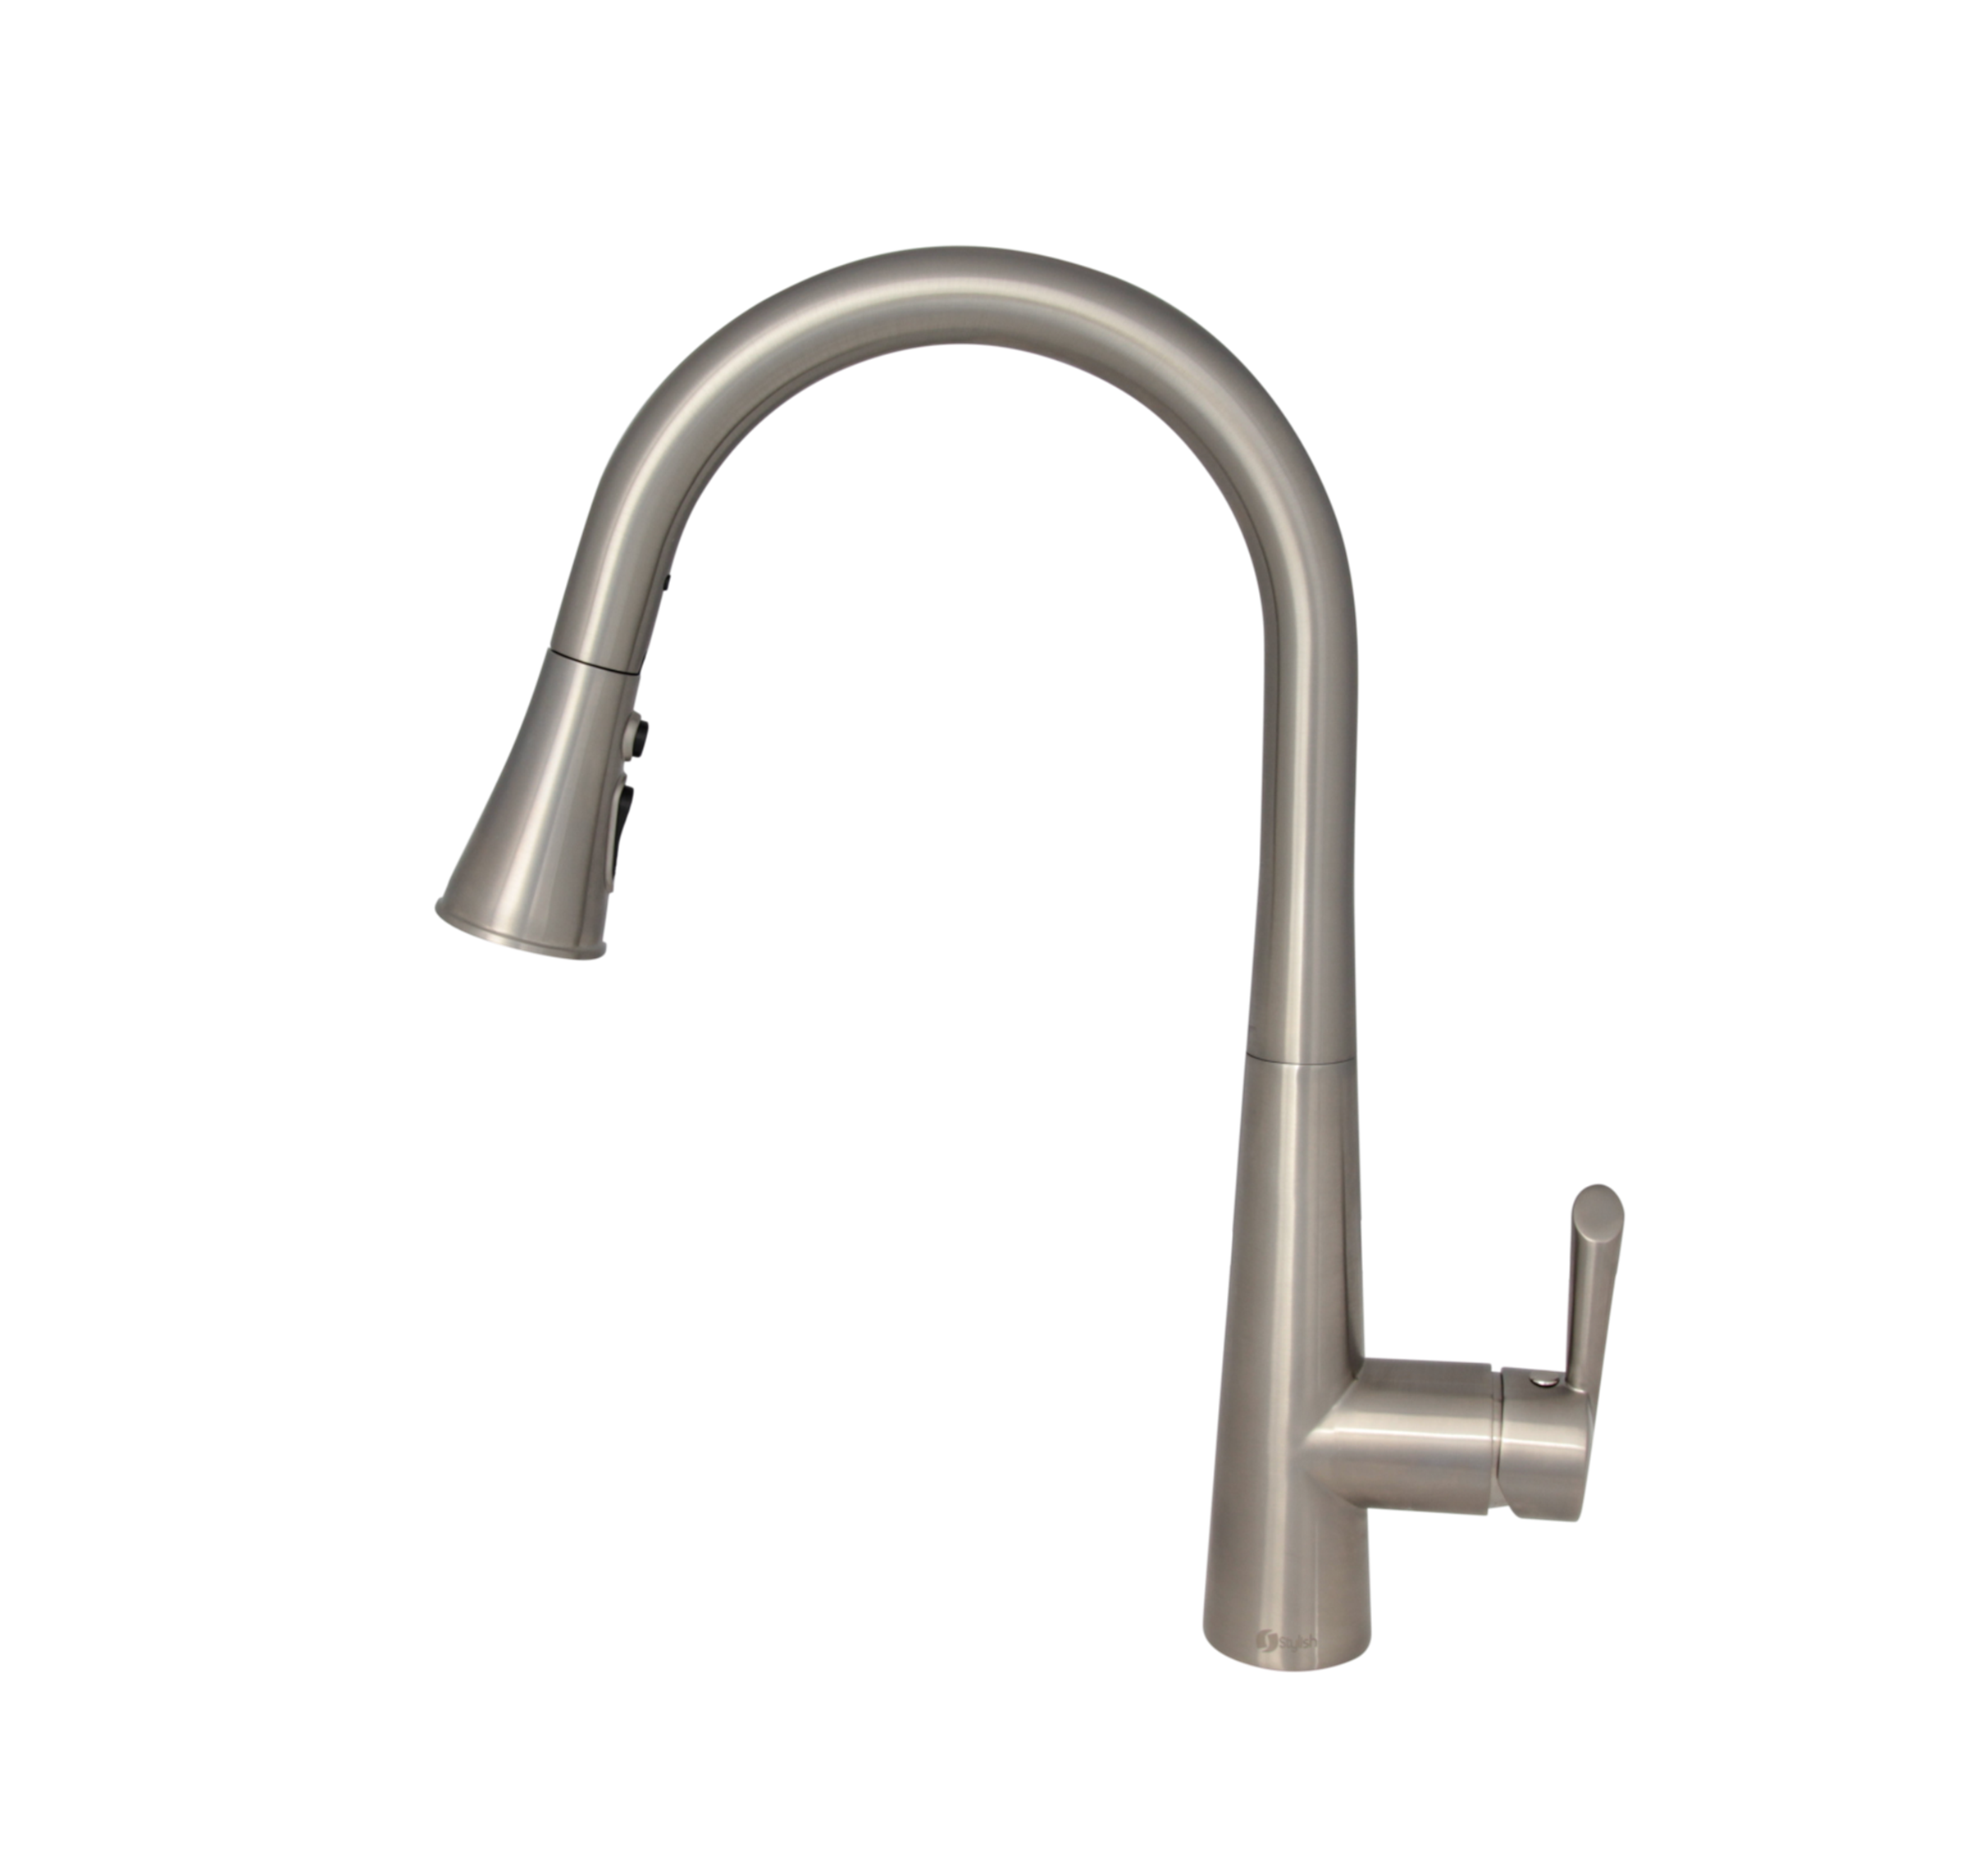 Stylish - Pull Down Kitchen Faucet  K-106B Brushed Nickel